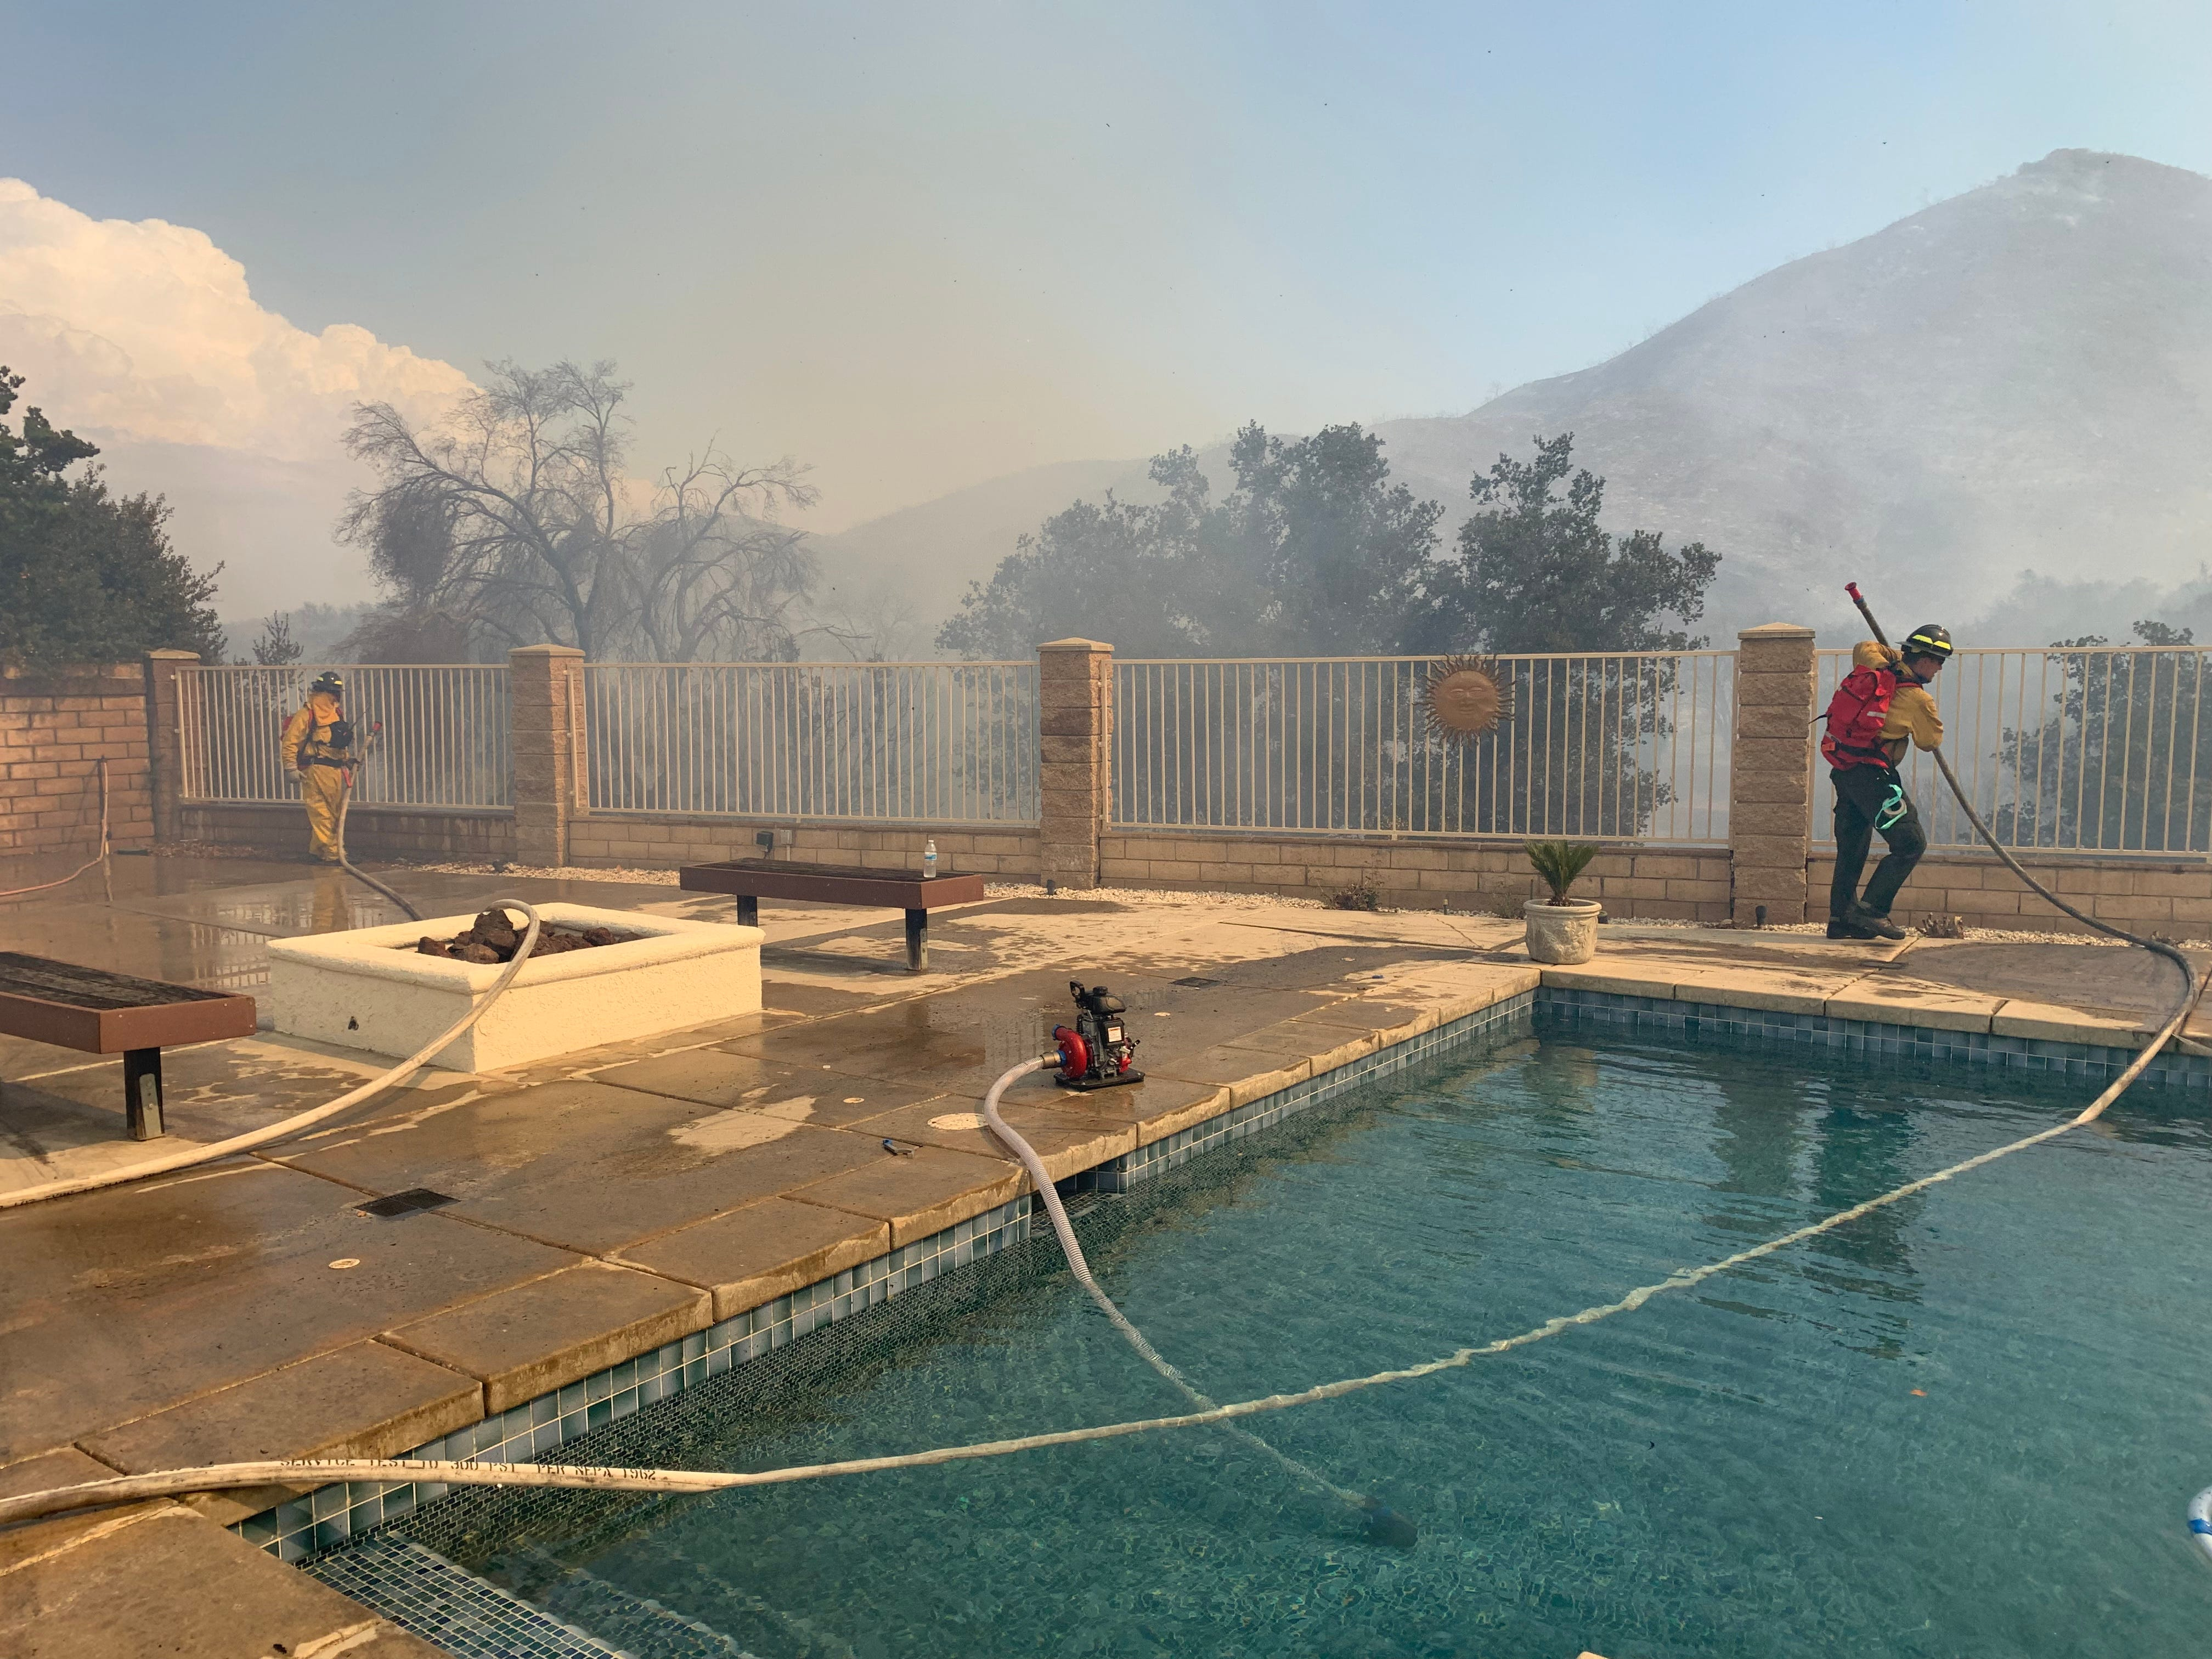 Private firefighters work to protect homes for insurers